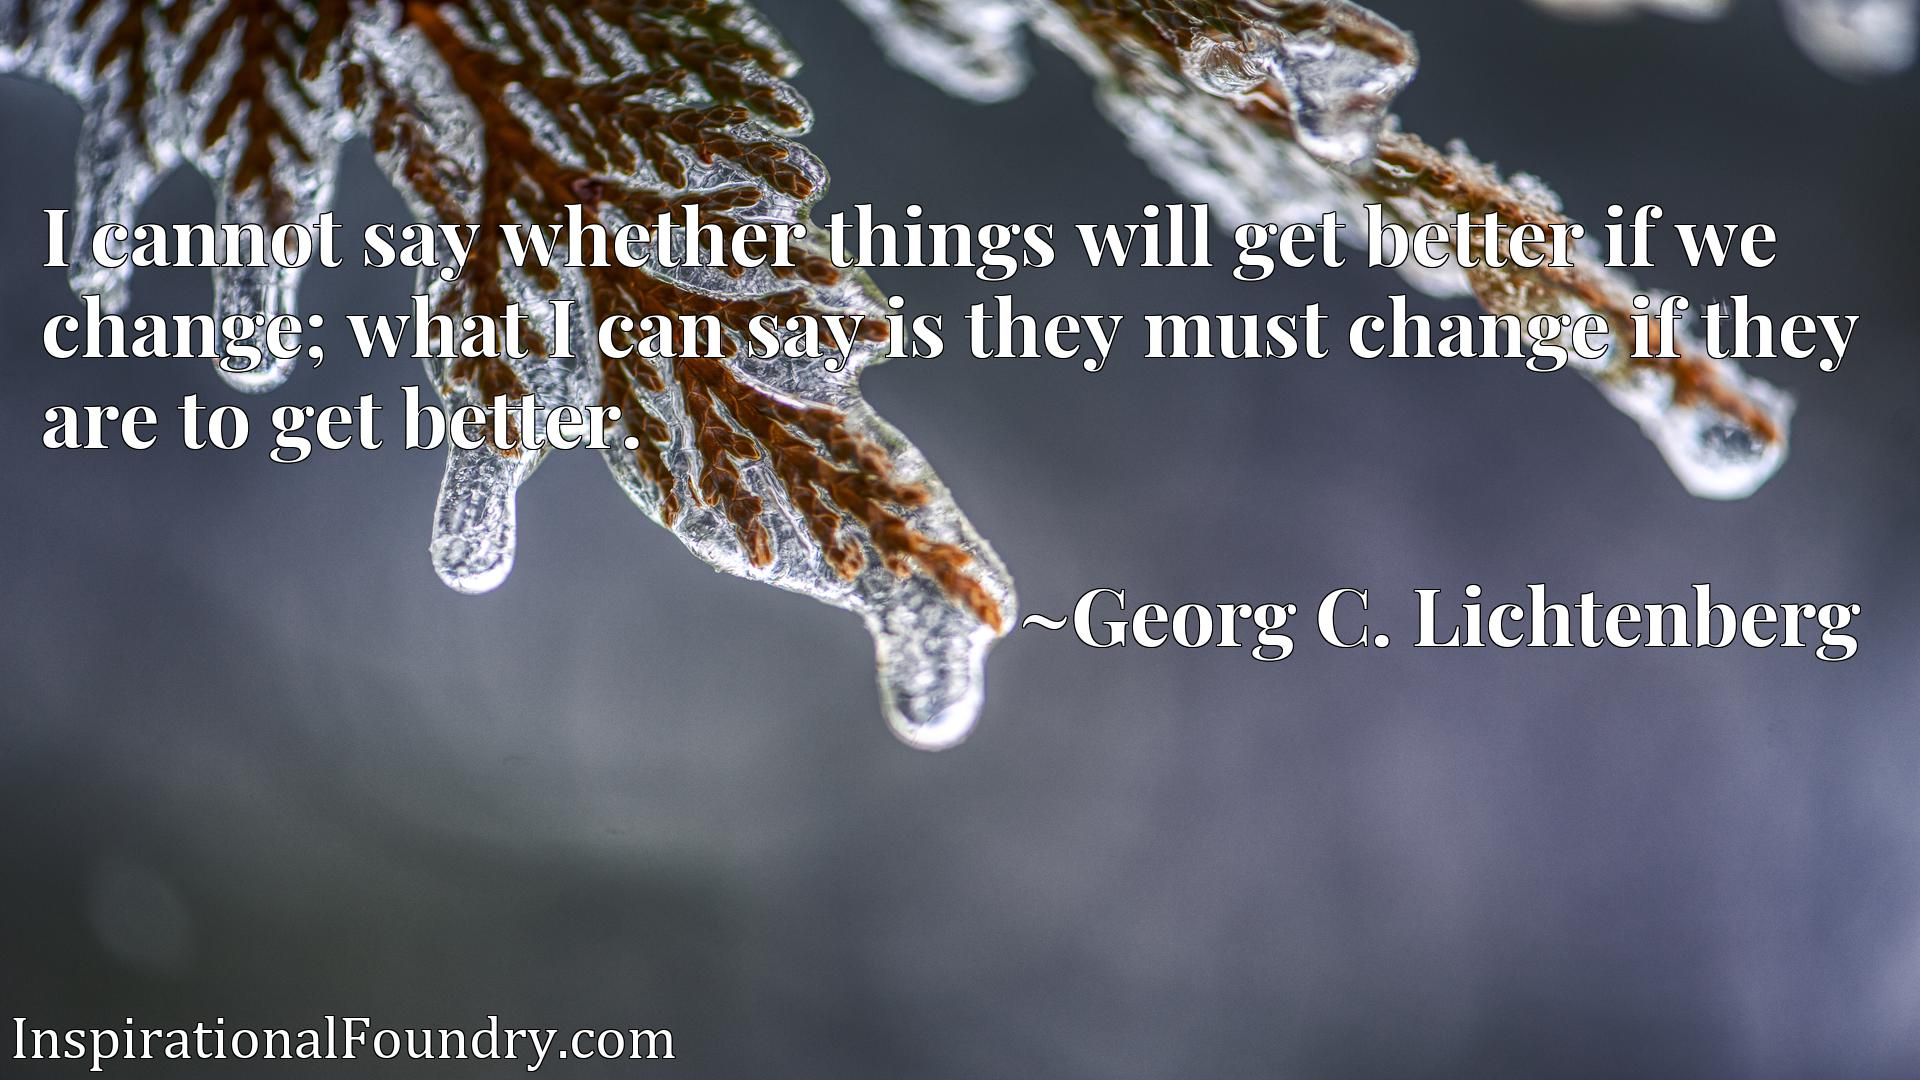 I cannot say whether things will get better if we change; what I can say is they must change if they are to get better.